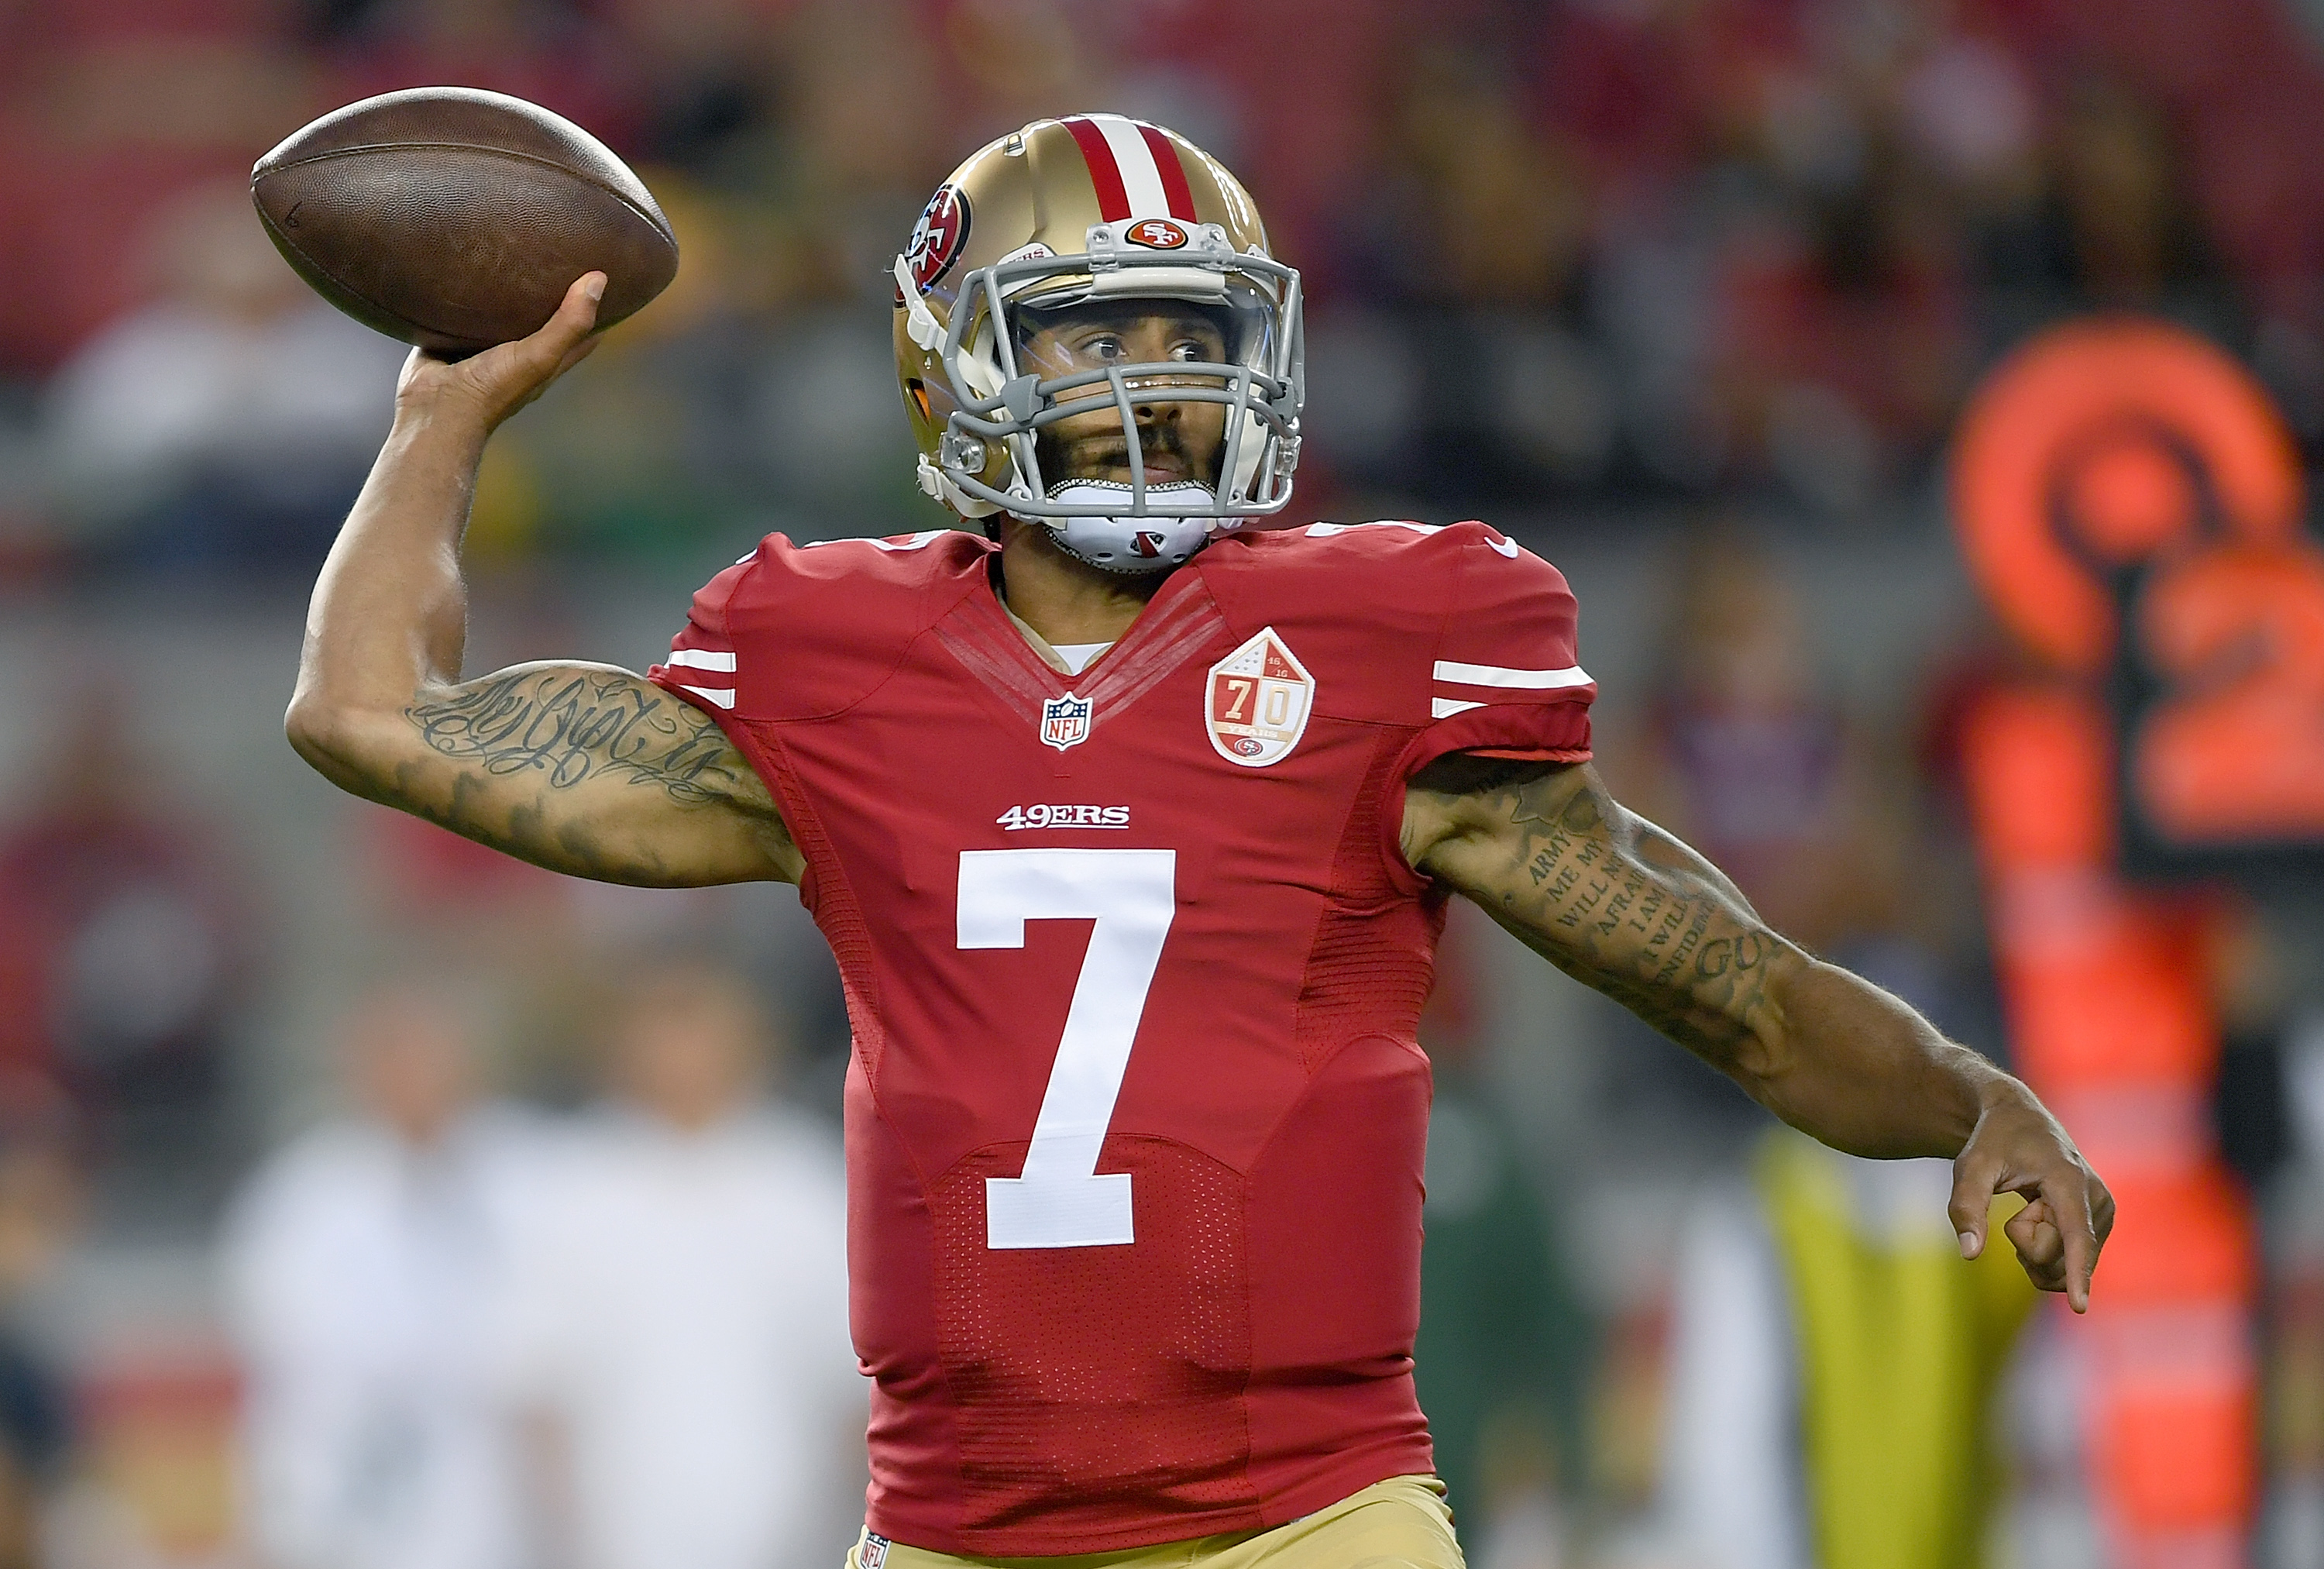 Colin Kaepernick continued his protest of the National Anthem — and more players joined in